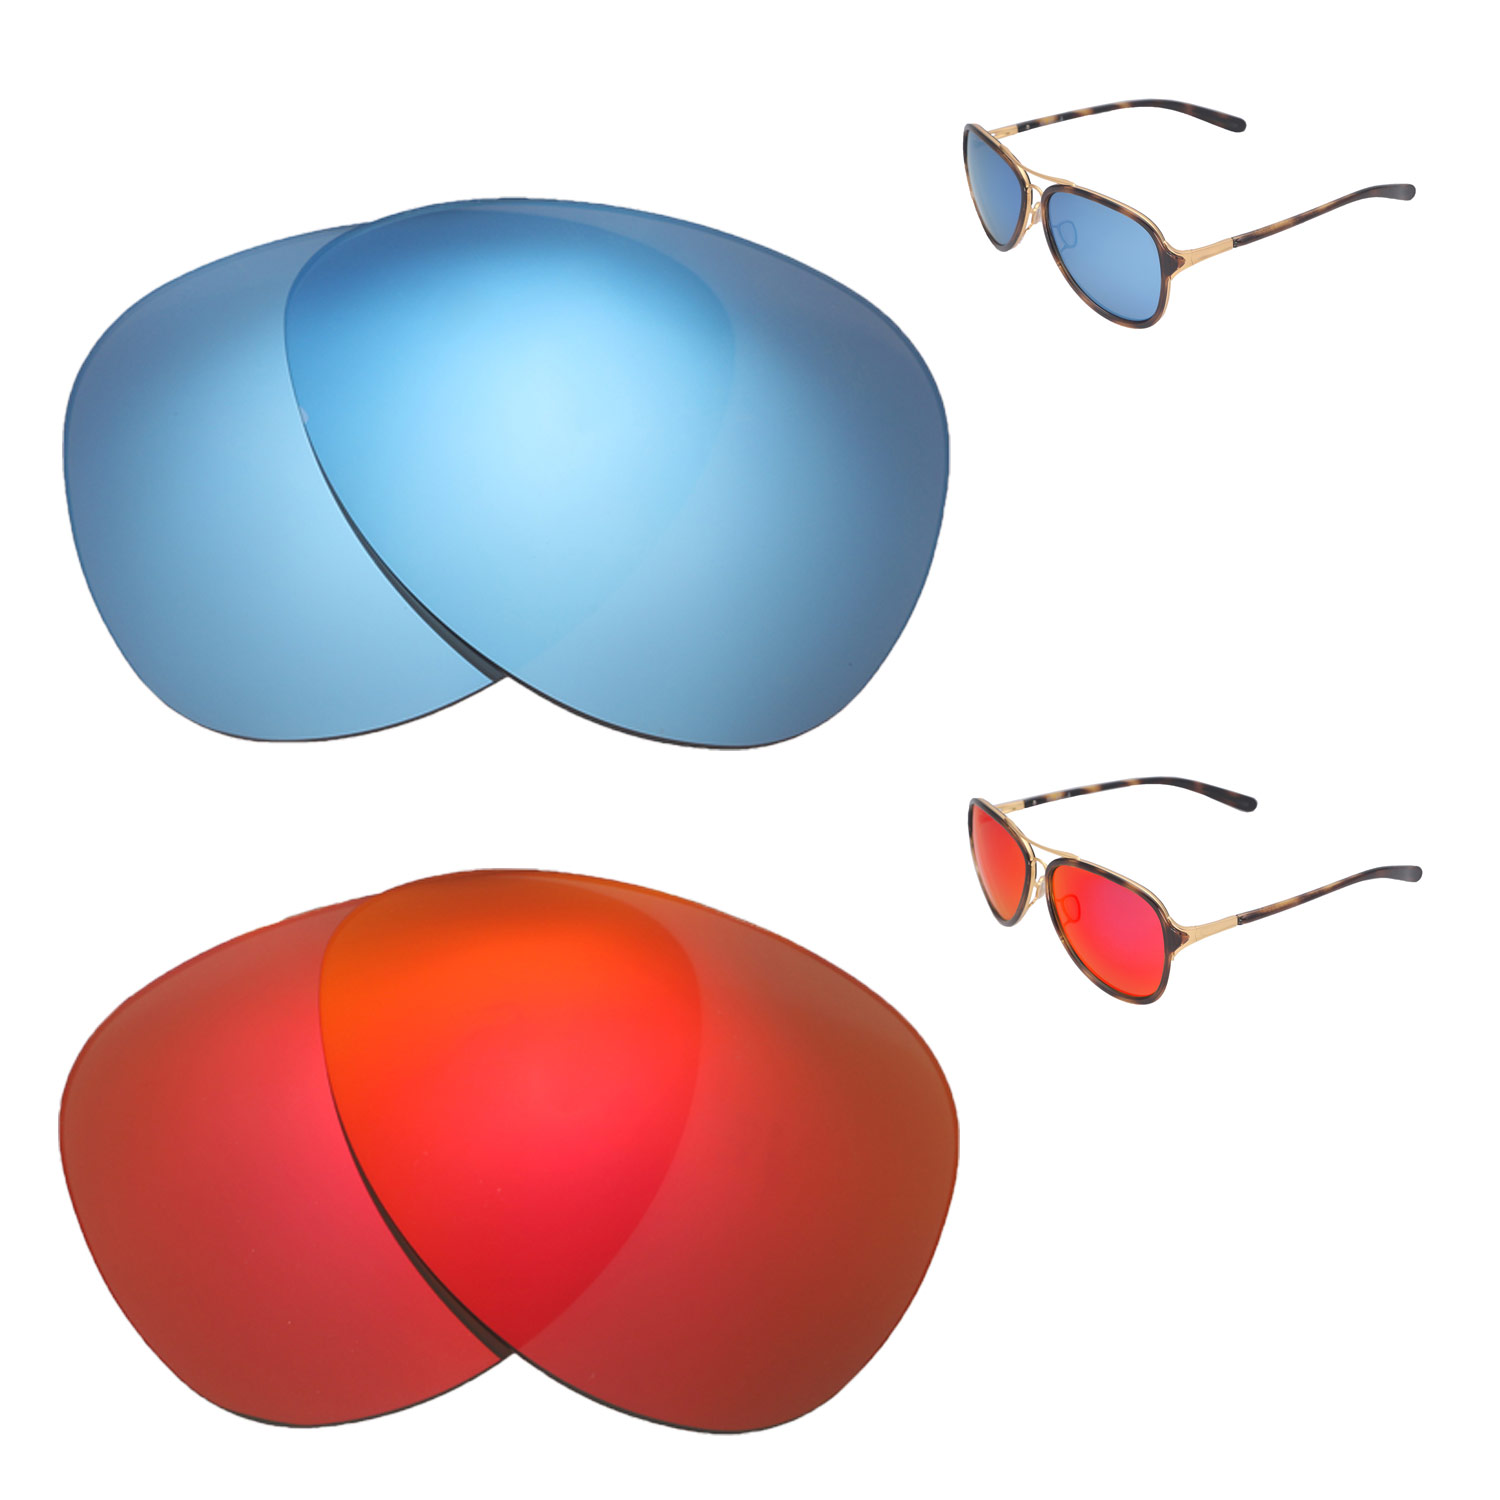 4b996f77c4 Details about Walleva Fire Red + Ice Blue Polarized Replacement Lenses For  Oakley Kickback